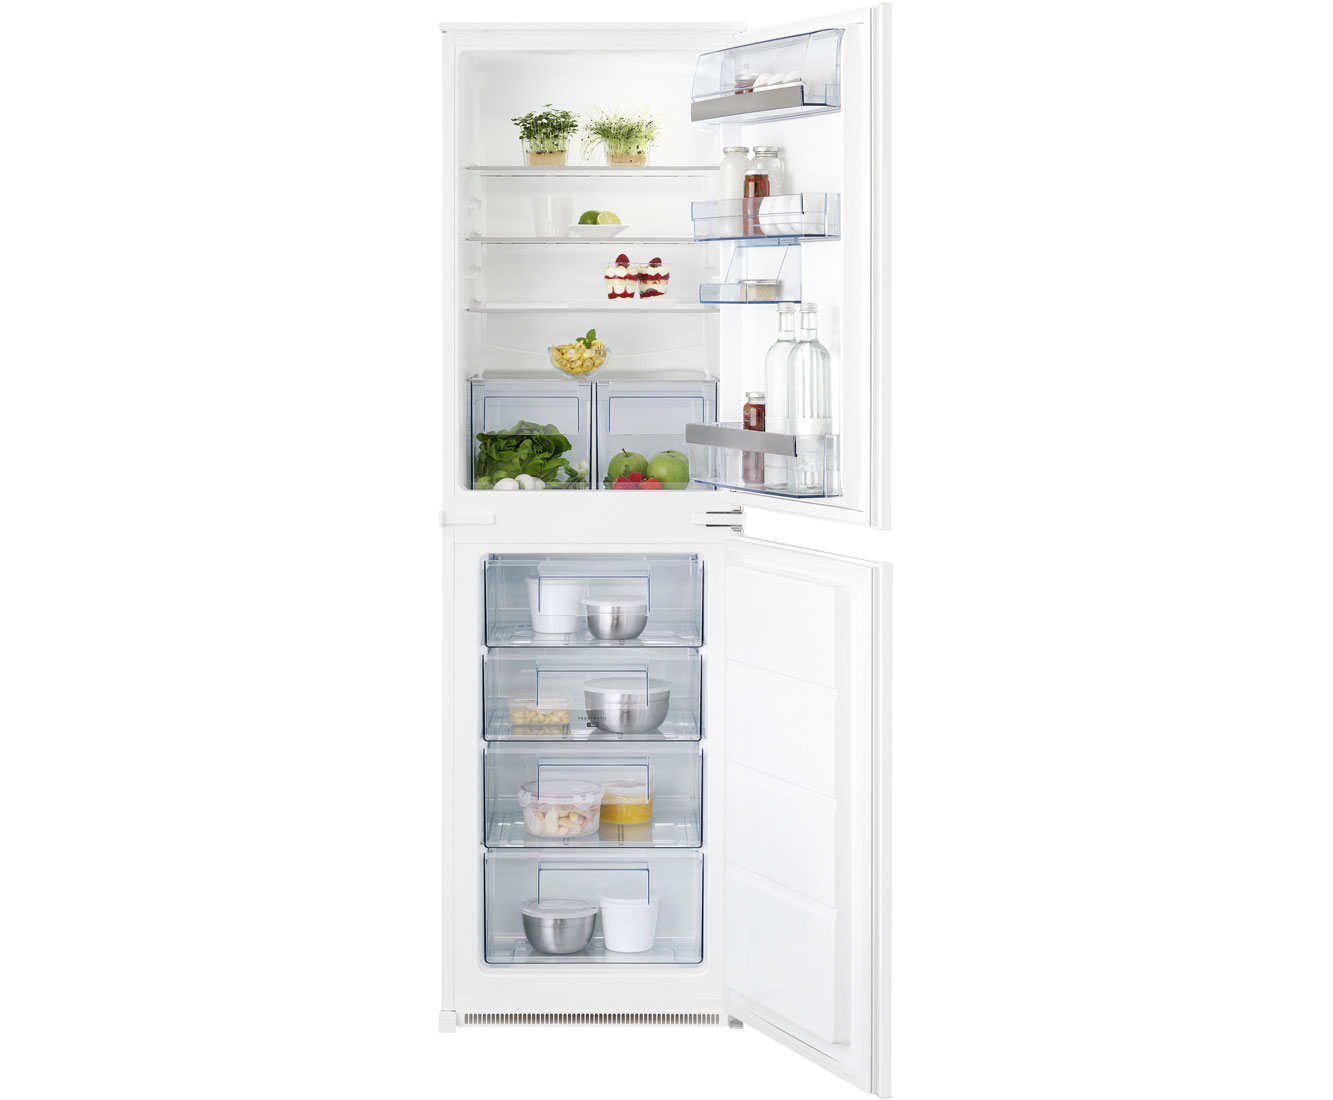 AEG Santo SCS51813S1 Integrated Fridge Freezer in White